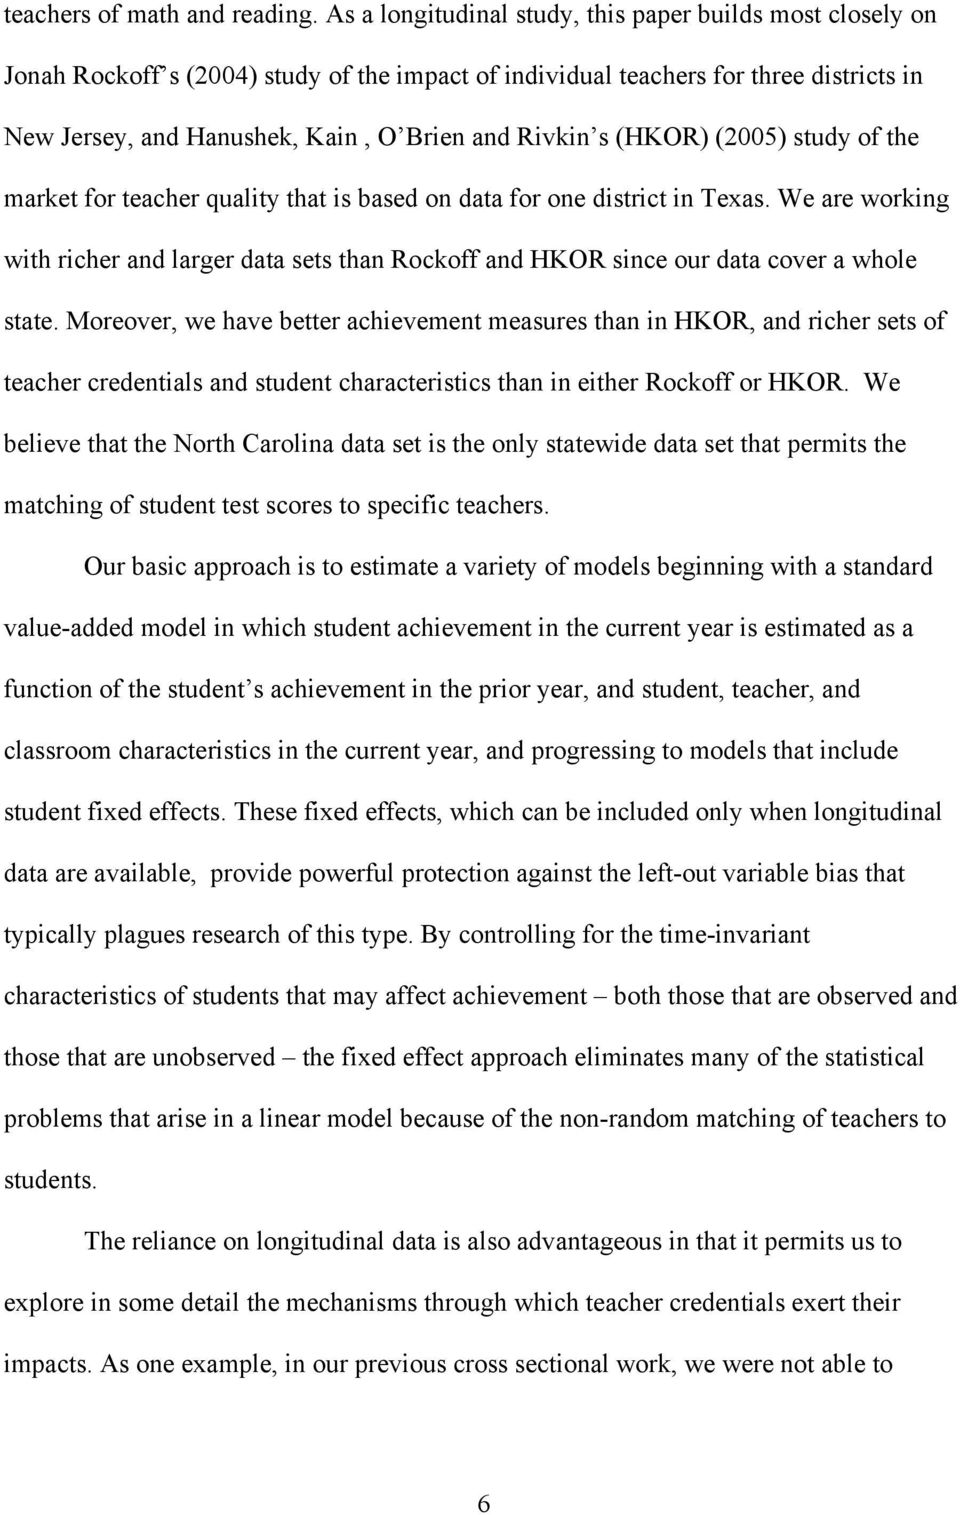 s (HKOR) (2005) study of the market for teacher quality that is based on data for one district in Texas.